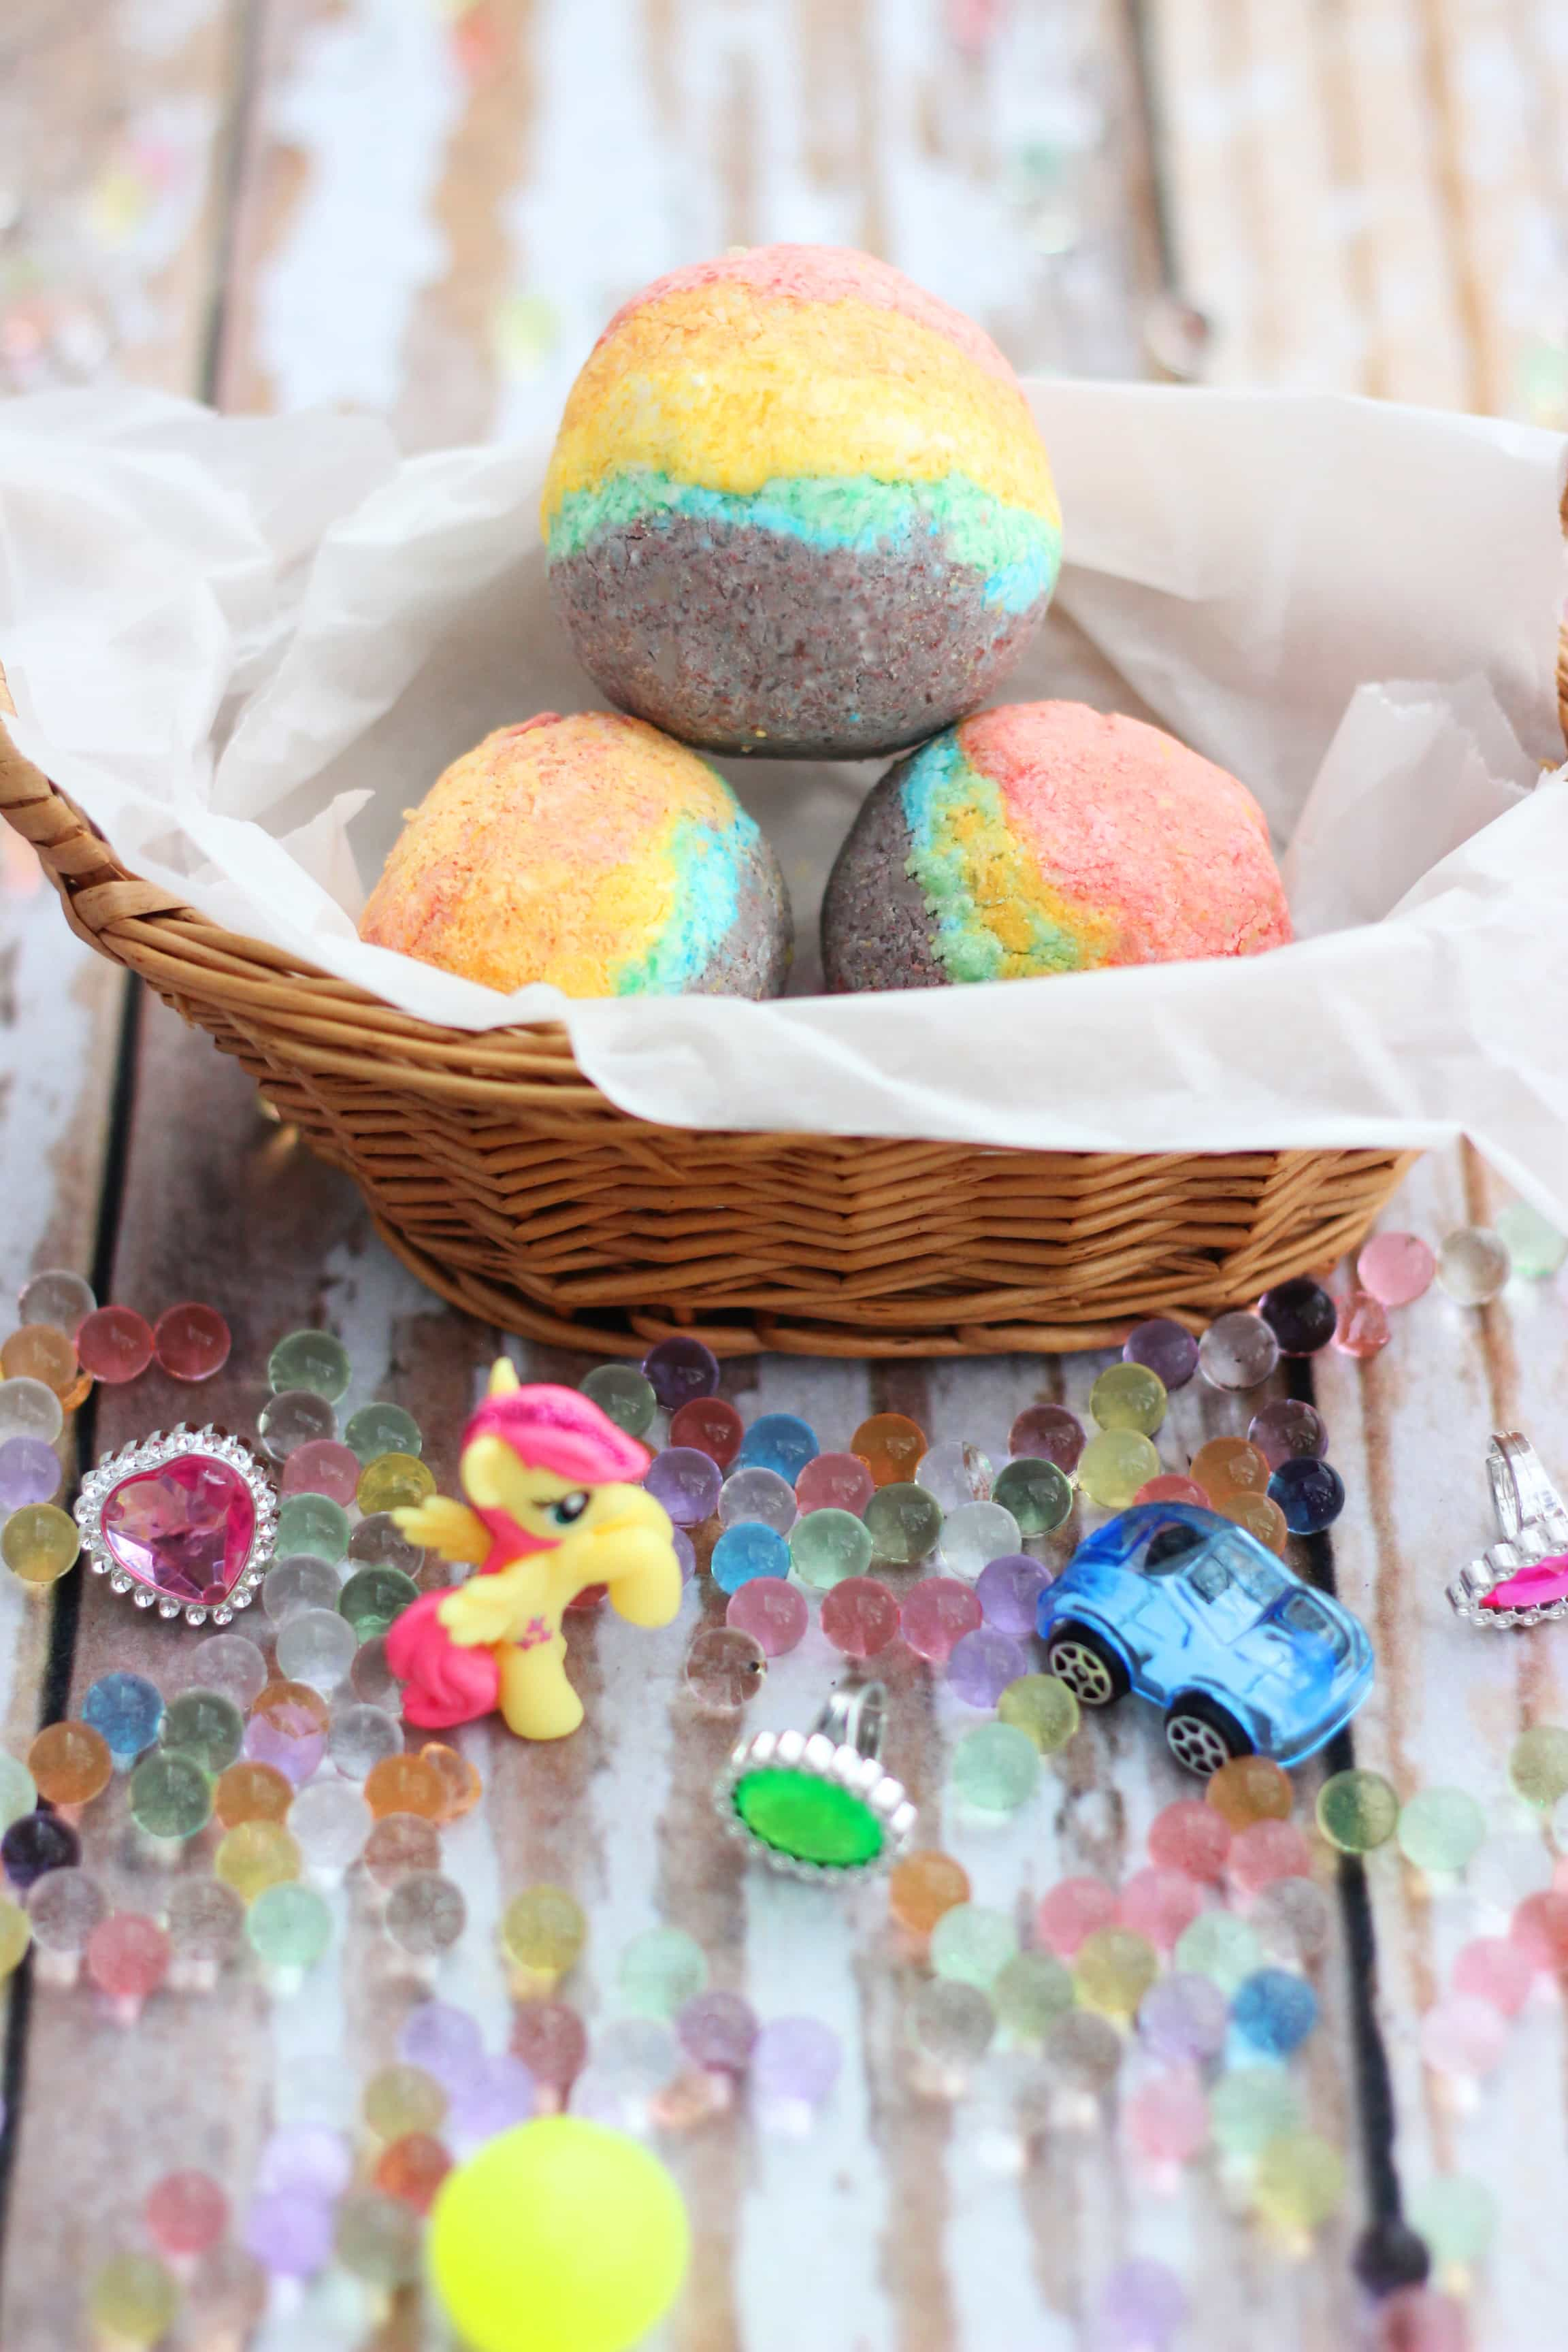 Homemade Rainbow Bath Bombs For Kids With Toys Inside